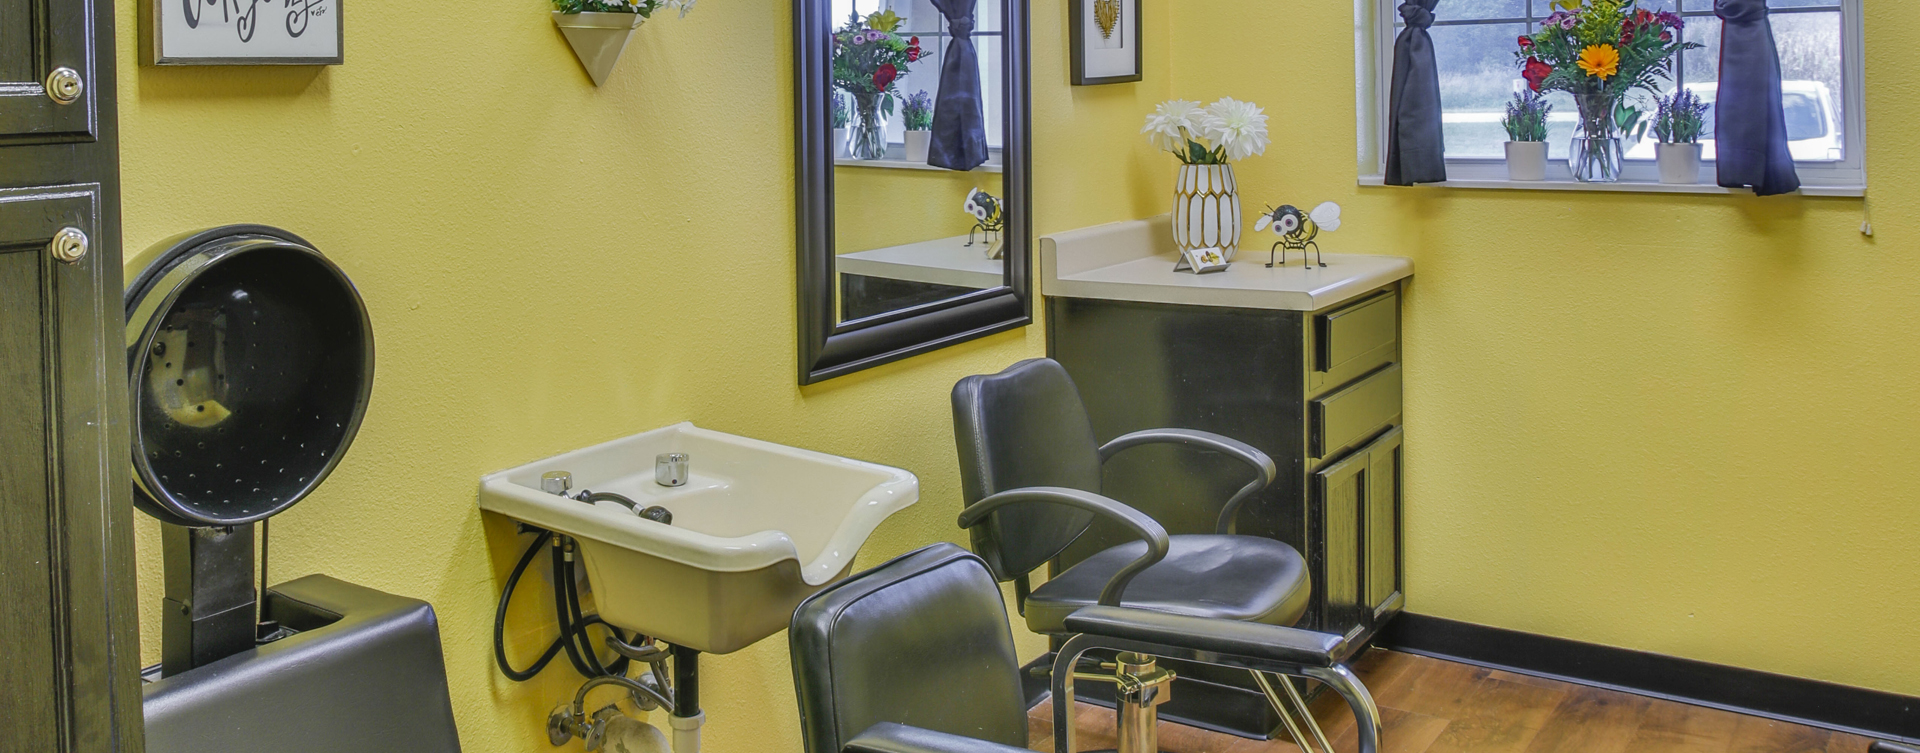 Strut on in and find out what the buzz is all about in the salon at Bickford of Champaign